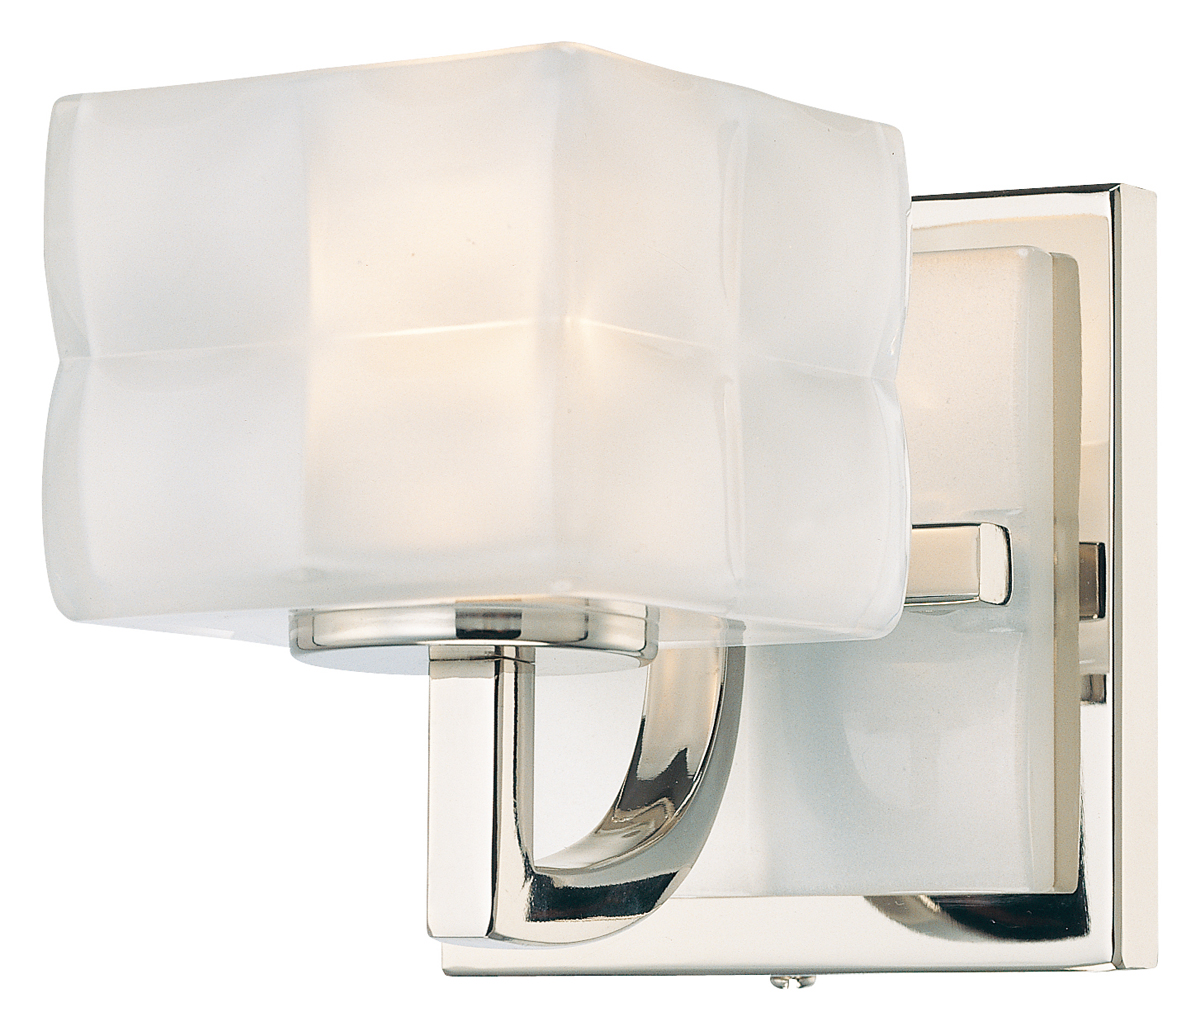 george kovacs lighting p5451 squared 1 light bath fixture shown in